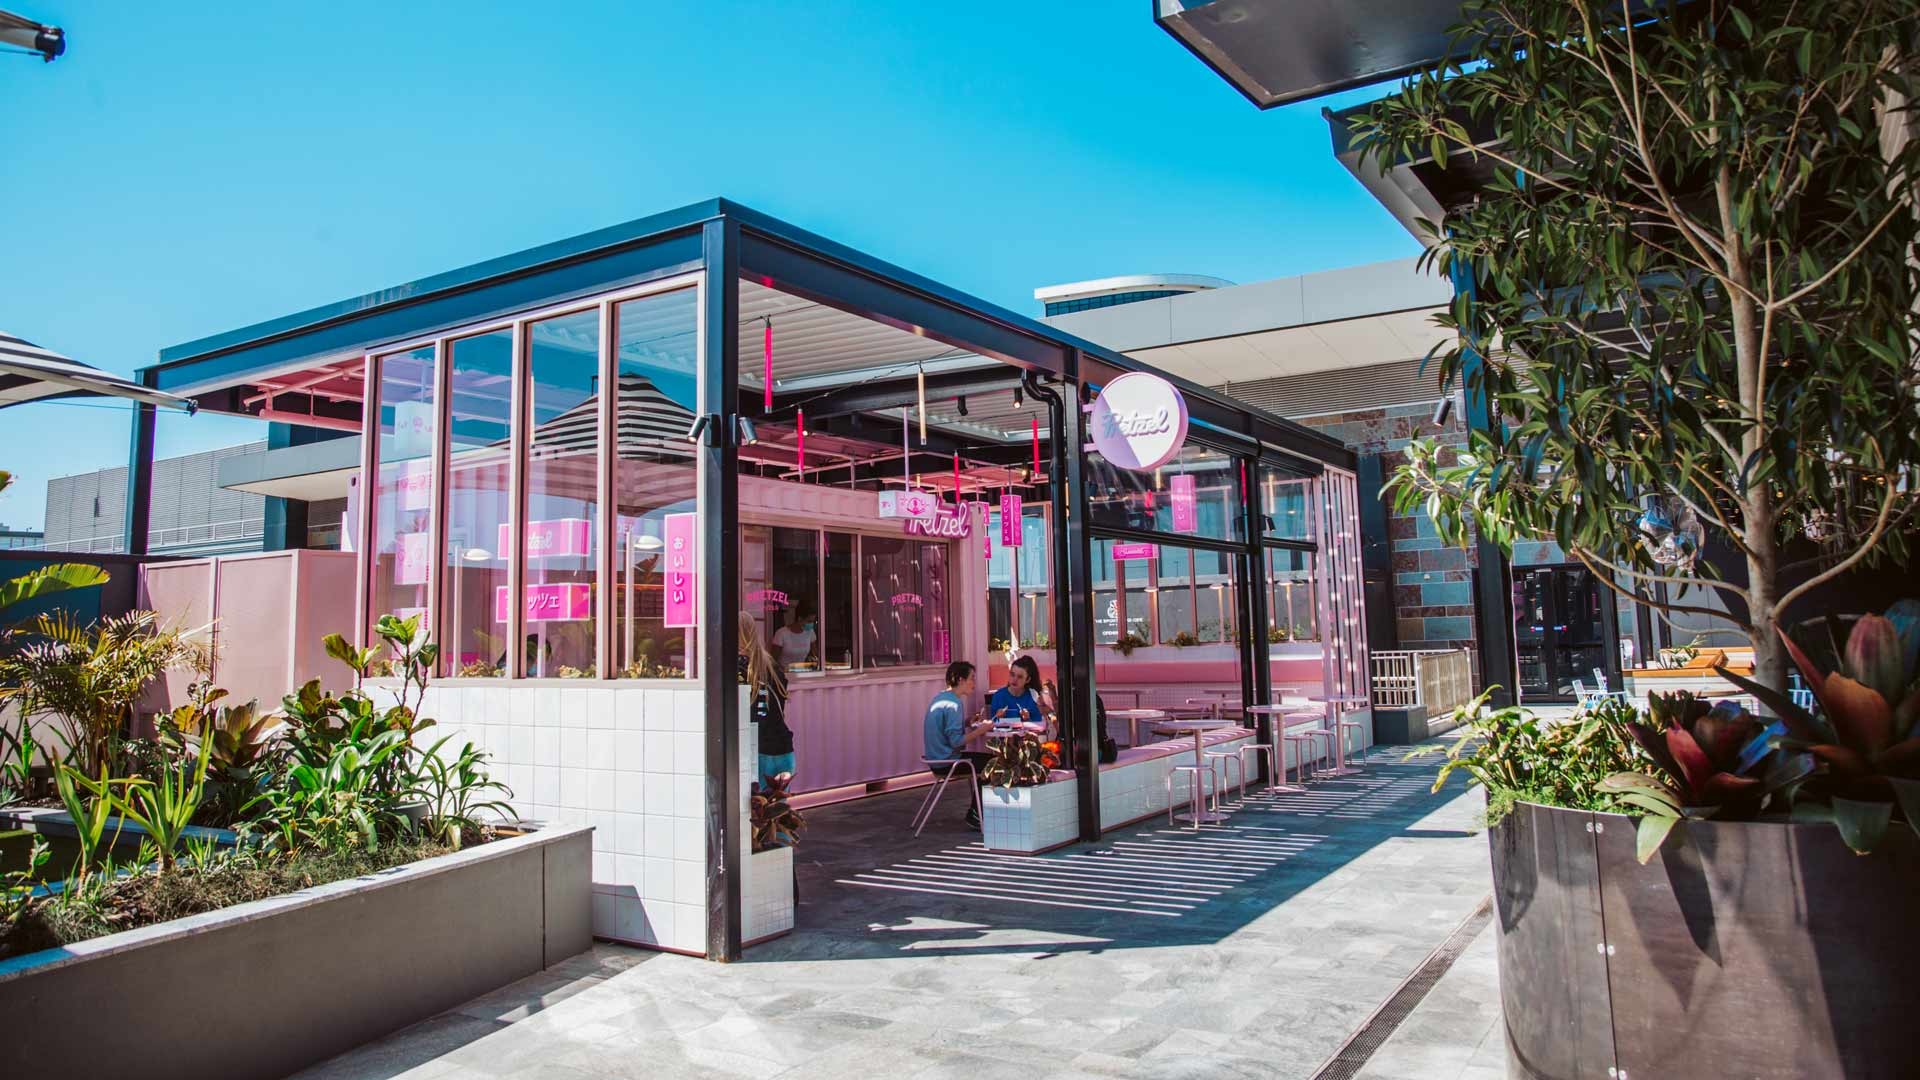 Westfield Doncaster Is Now Home to a $30-Million Rooftop Food Precinct with a DIY Okonomiyaki Joint